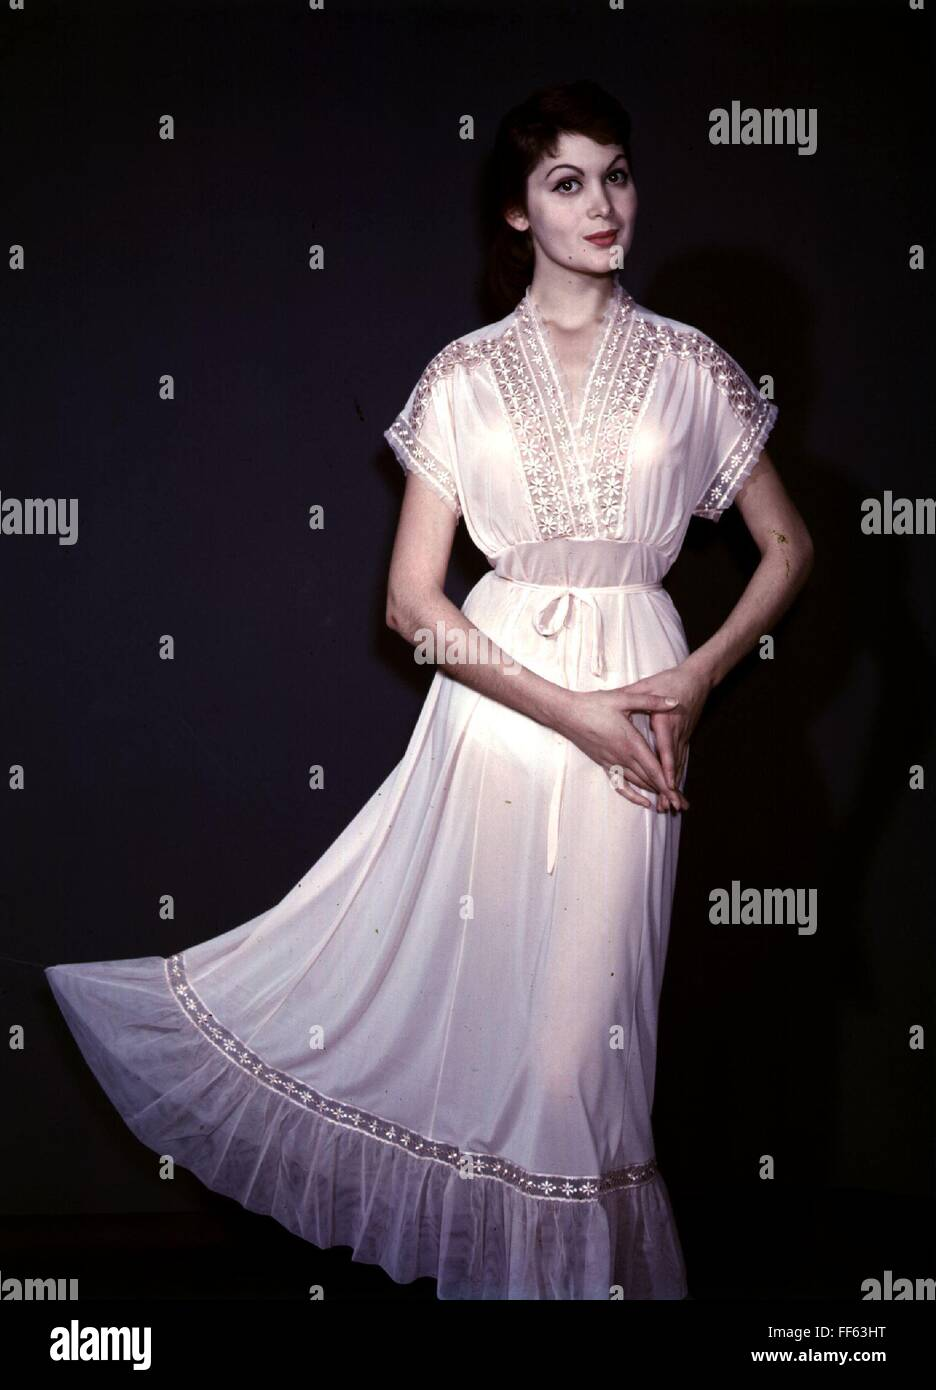 fashion, 1950s, ladies' fashion, woman wearing white nightshirt, , Additional-Rights-Clearences-NA - Stock Image